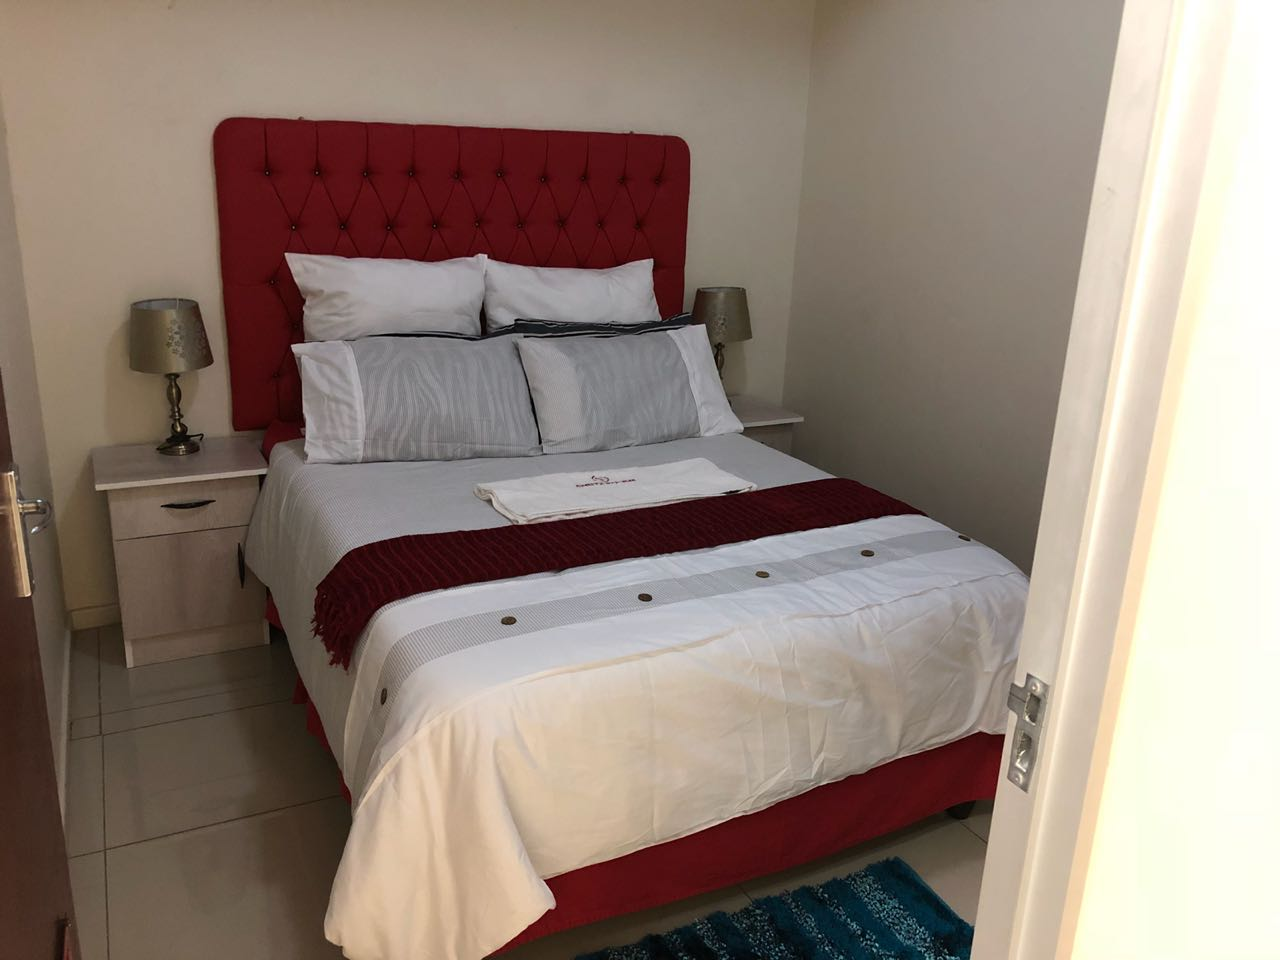 BELLVILLE SLEEP&GO is a budget lodge offering short term accommodation services in Cape Town.